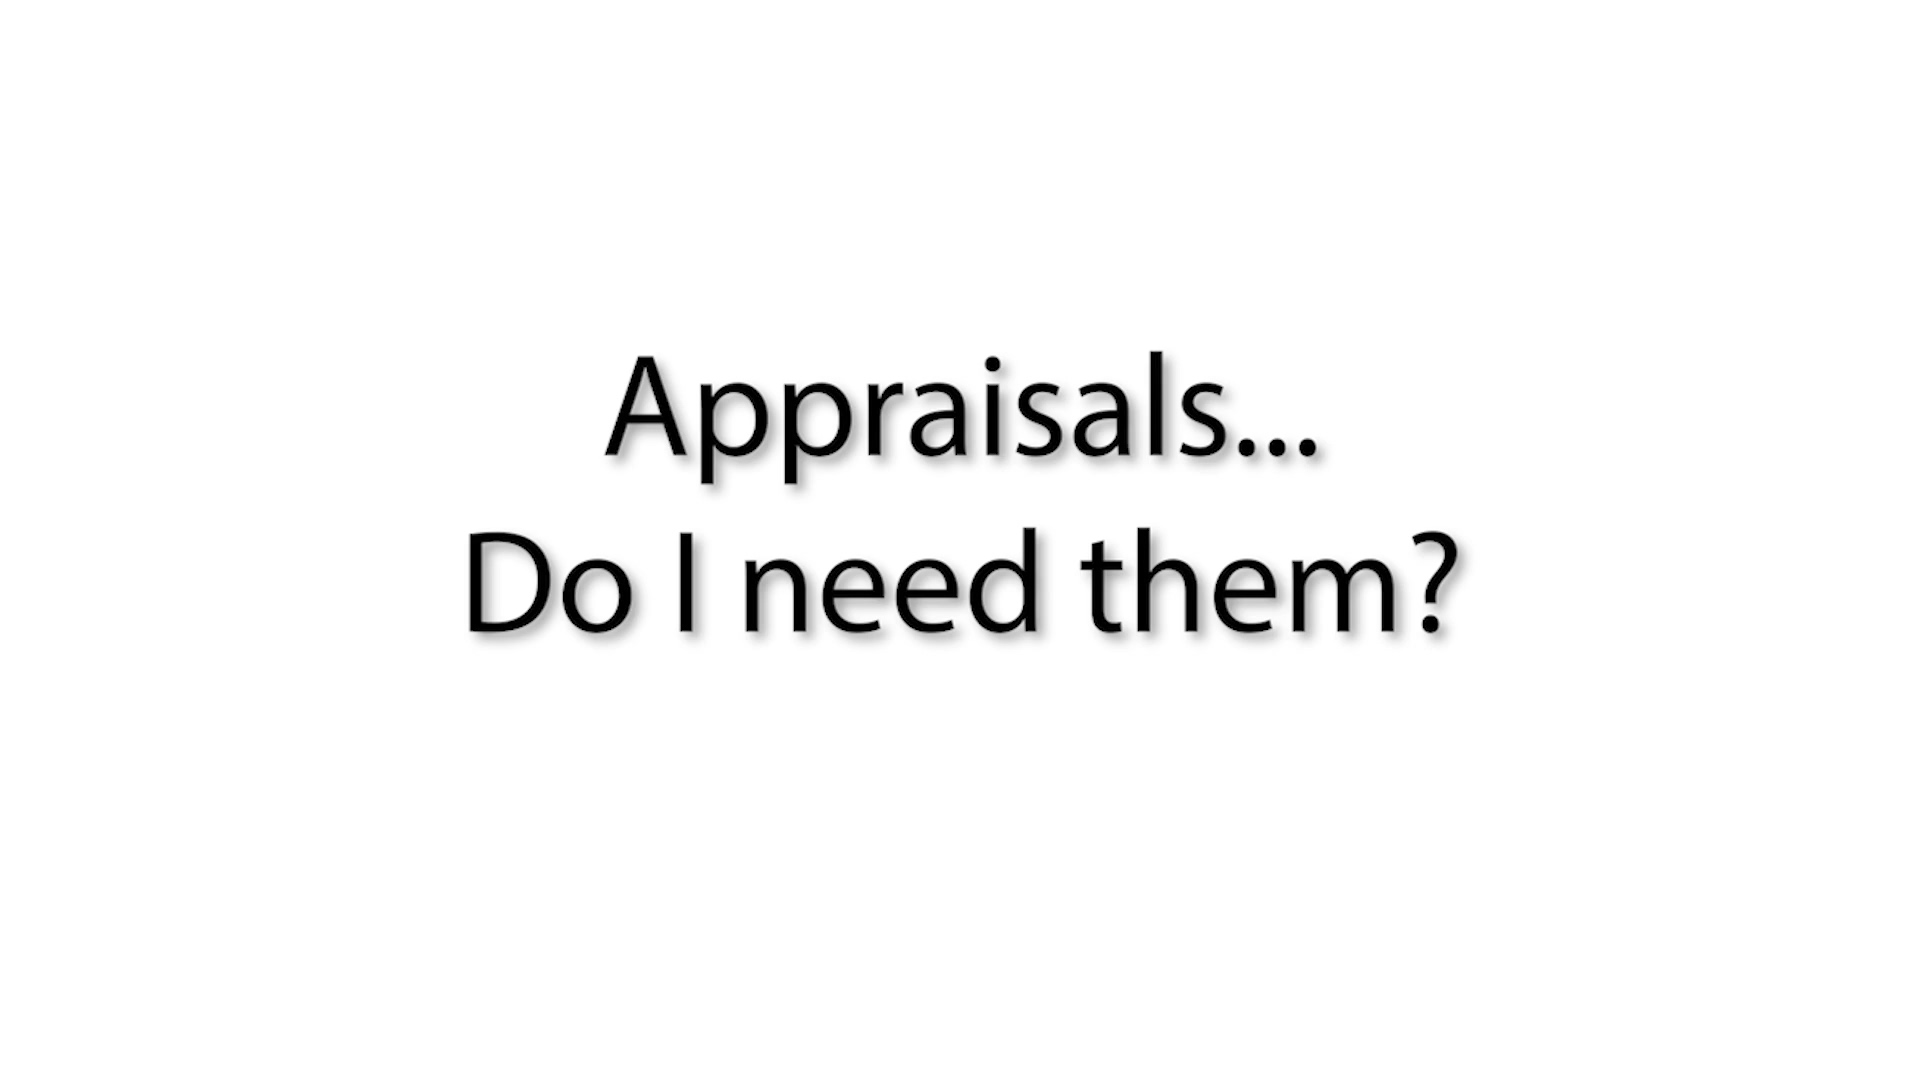 2. Appraisals do I need them